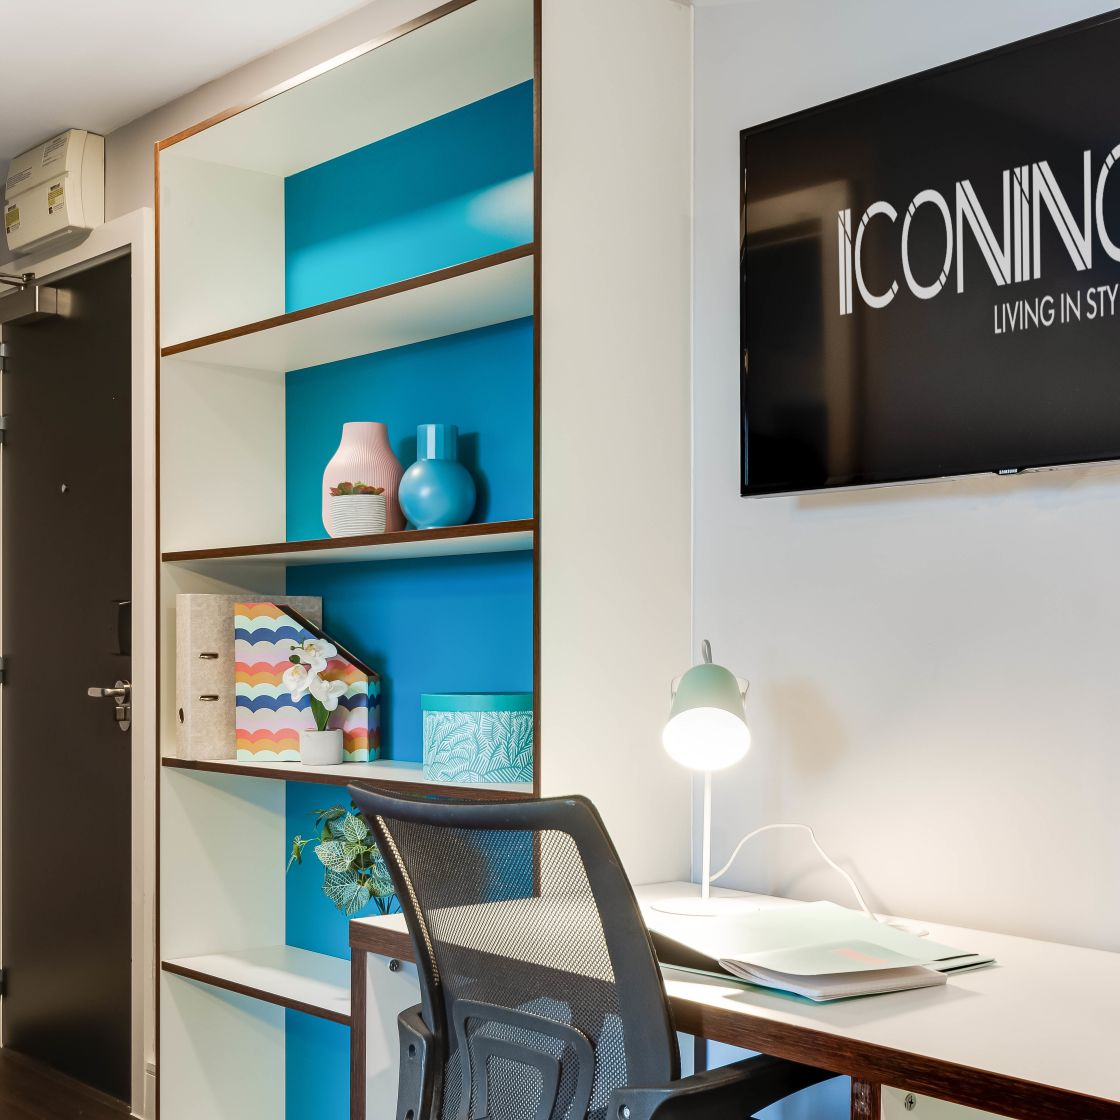 Grande student apartment in Leeds with desk and flat screen TV. IconInc, The Edge,